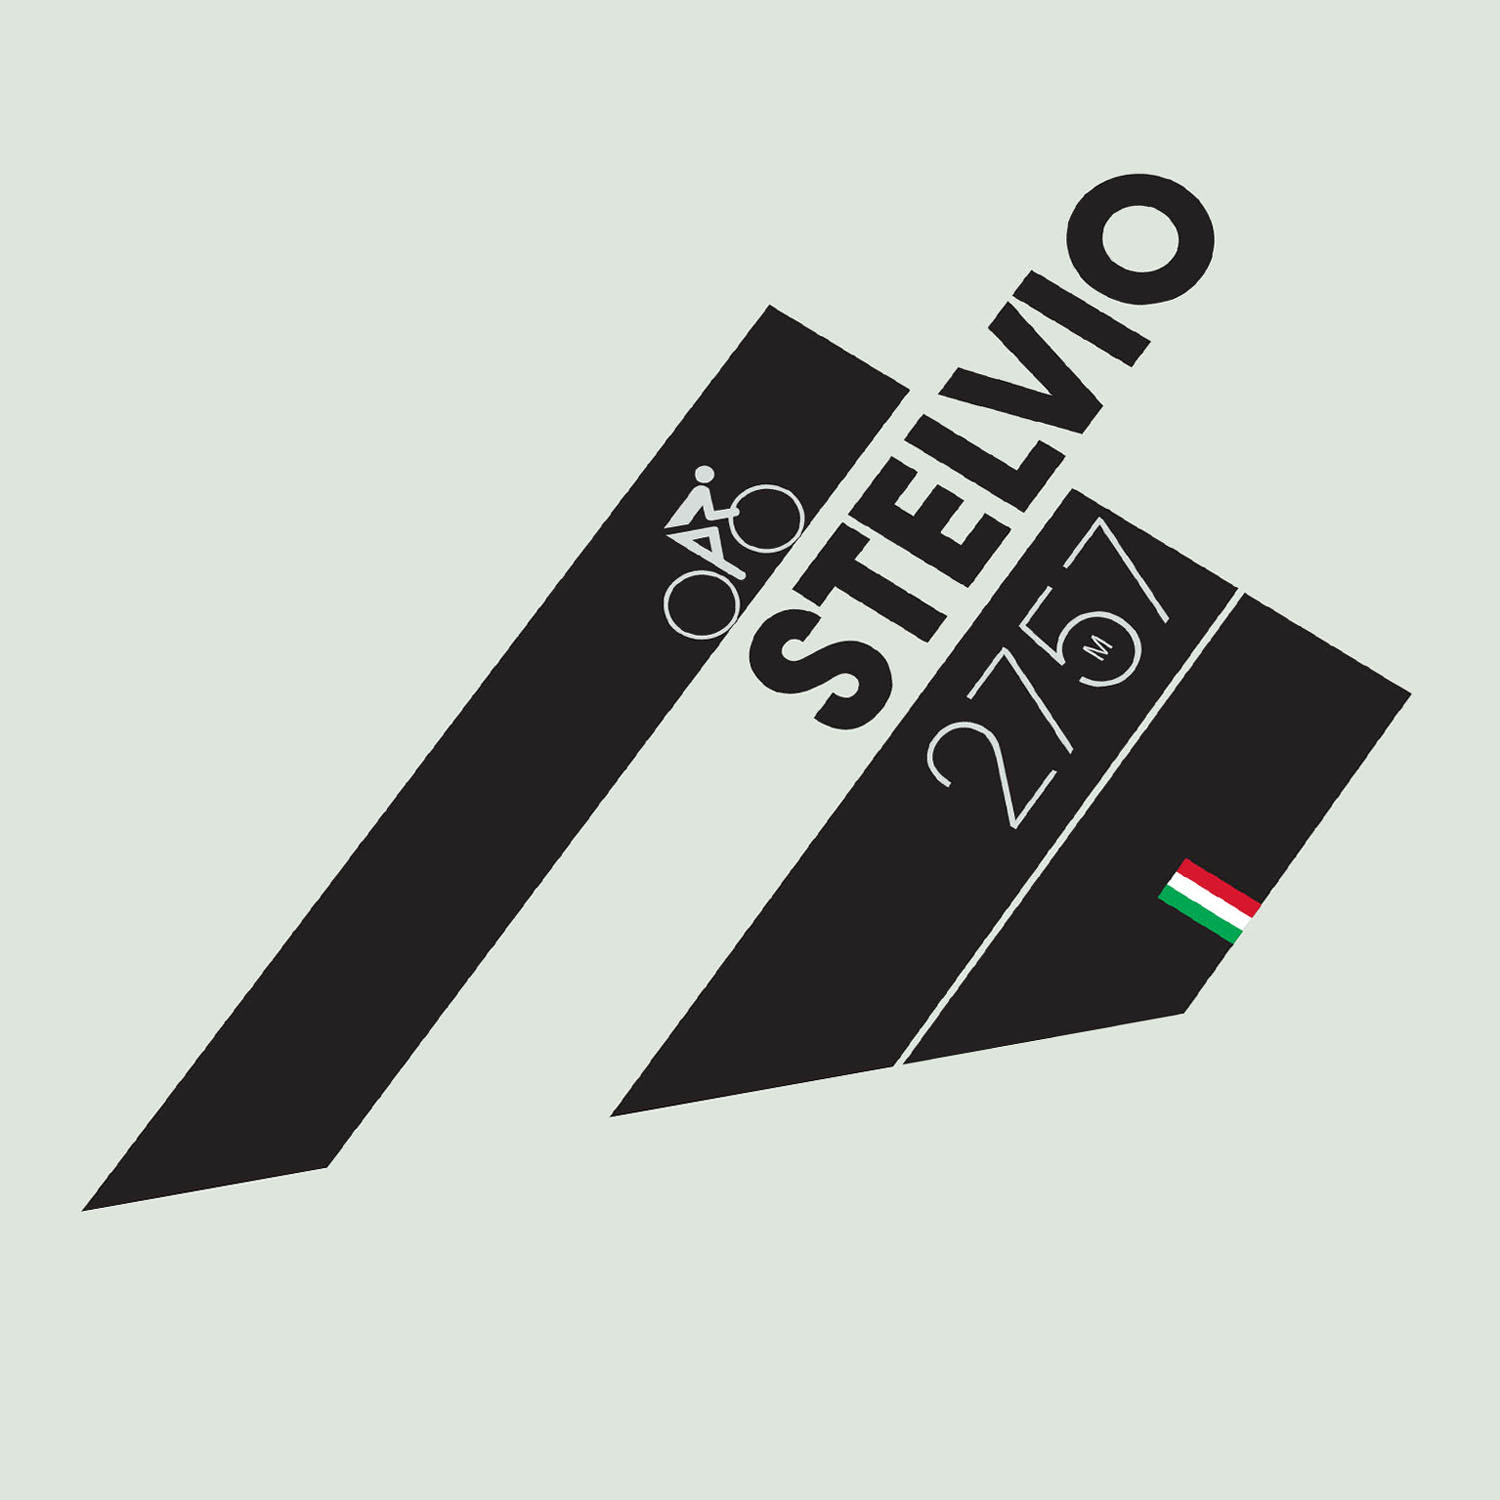 T-lab-Stelvio-A3-cycling-poster-detail